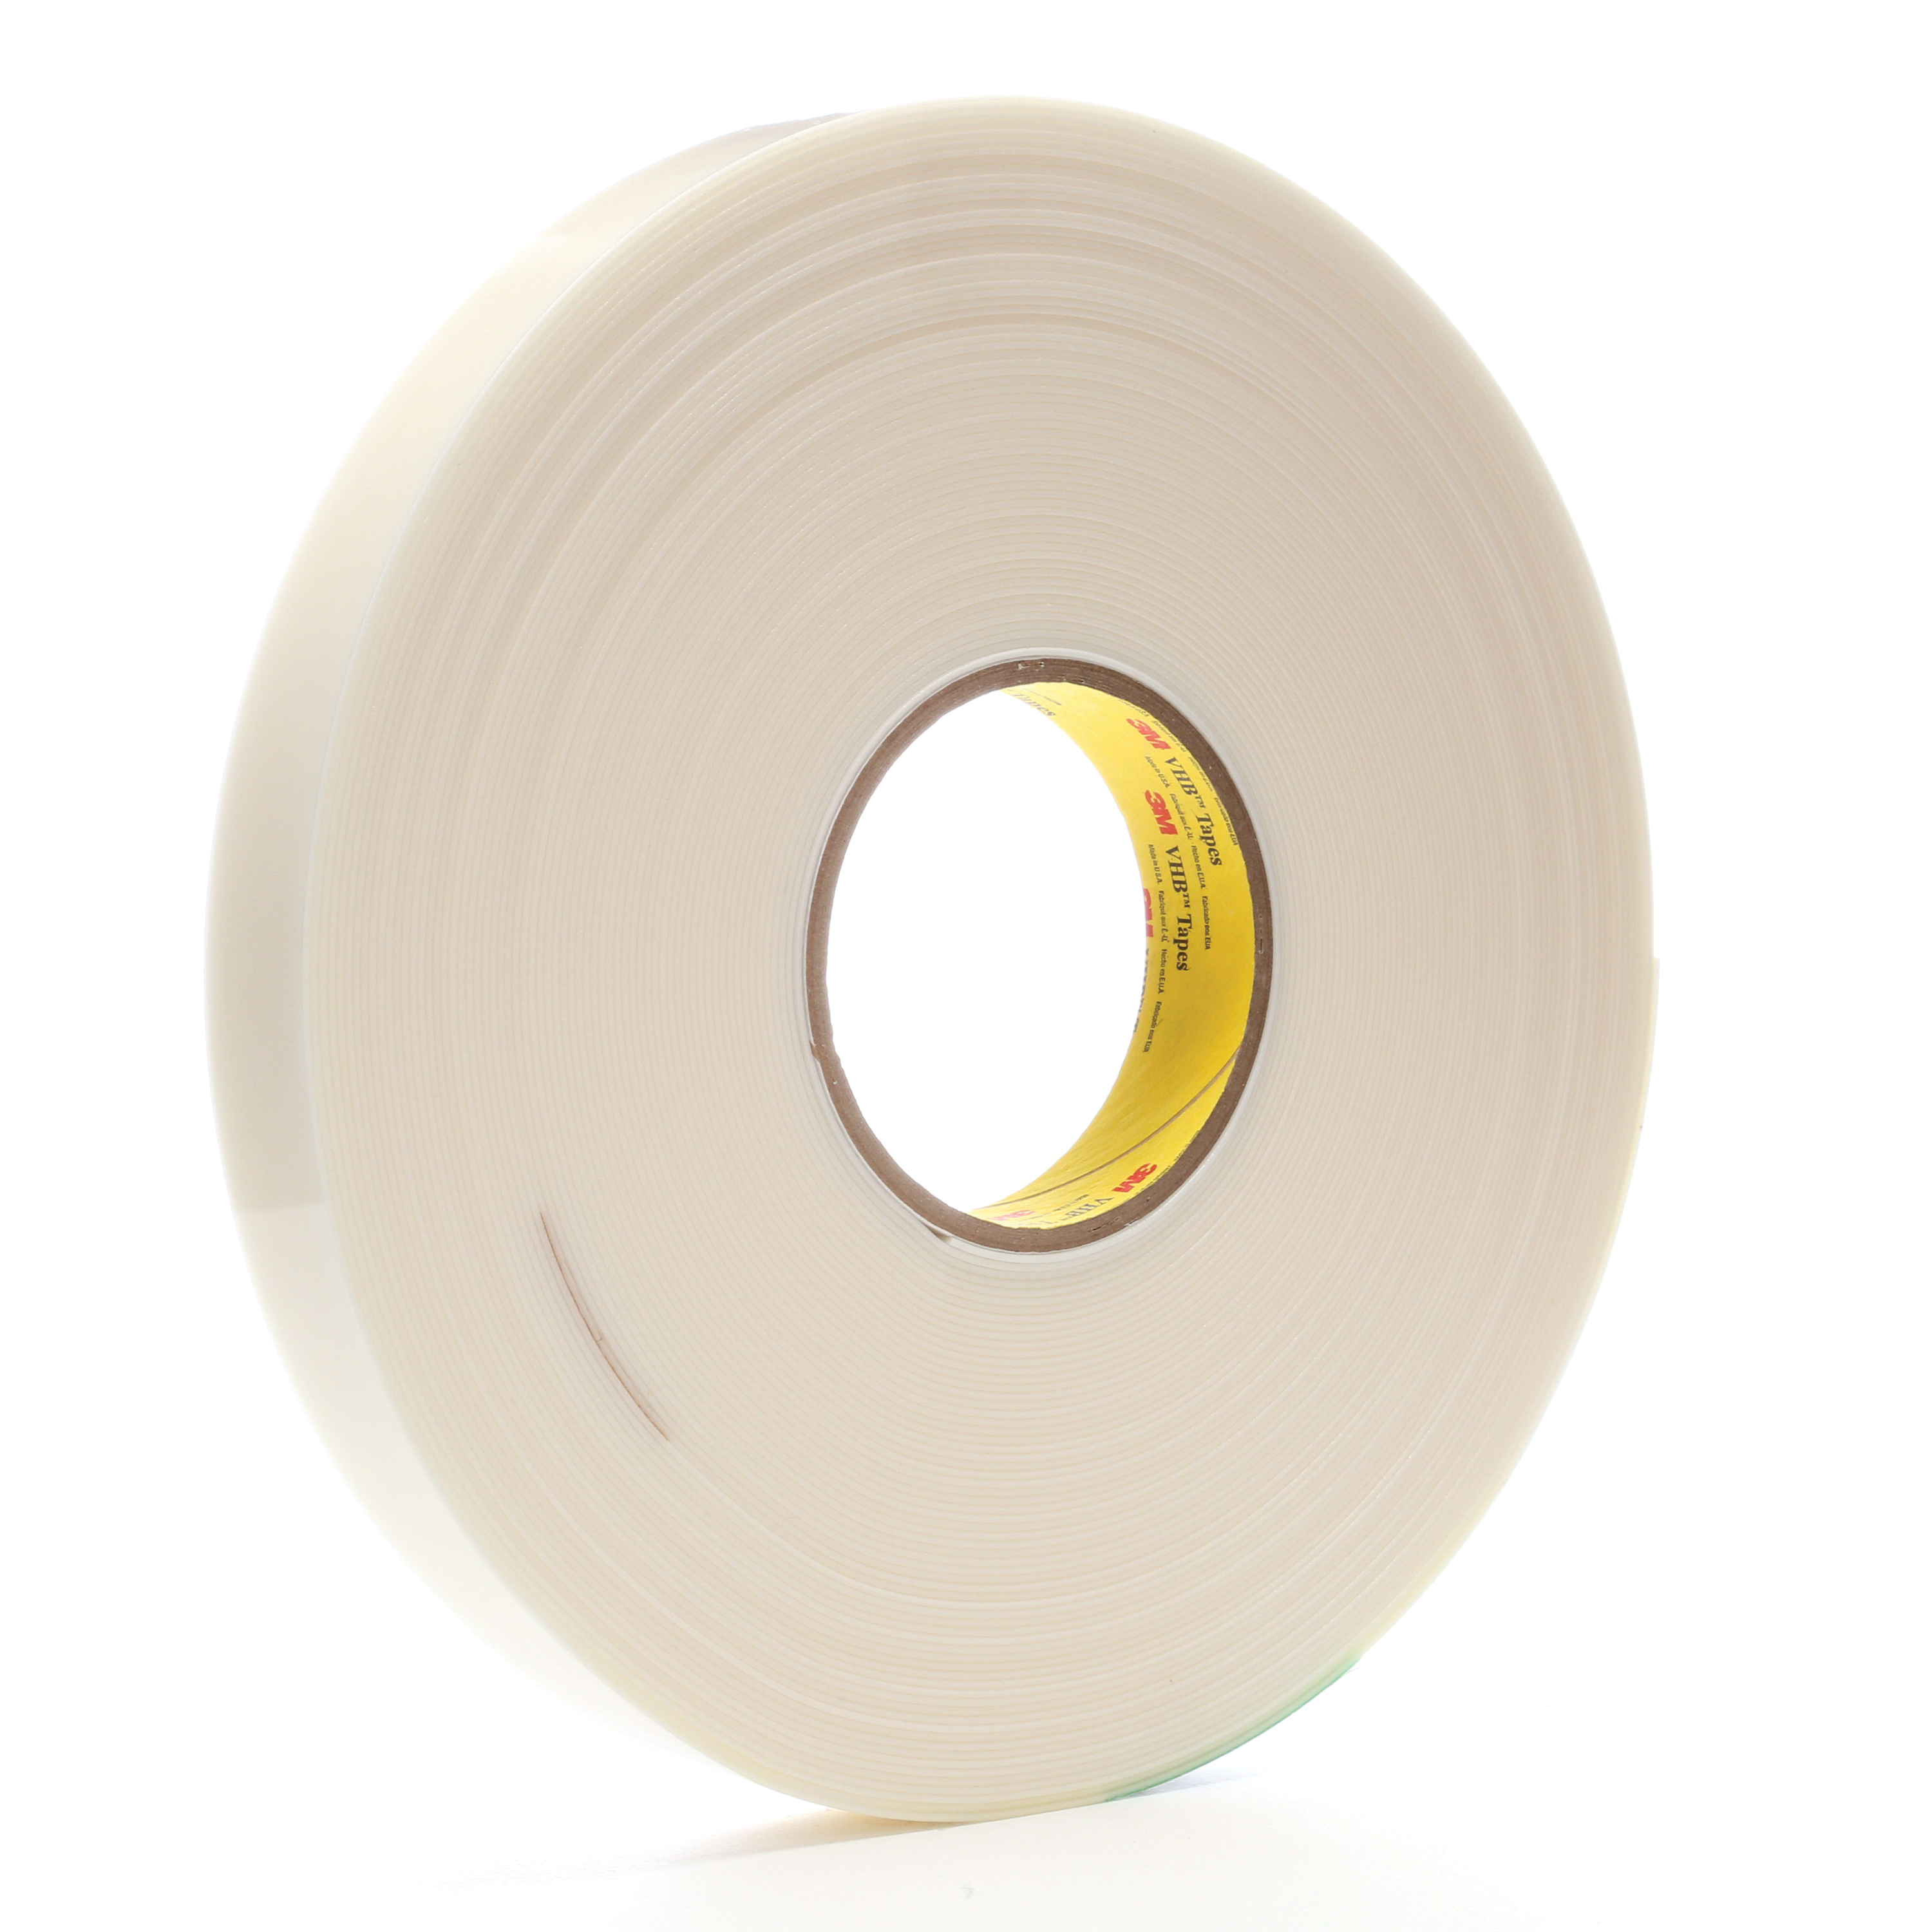 3M™ VHB™ 021200-67287 Pressure Sensitive Double Sided Bonding Tape, 36 yd L x 1 in W, 0.045 in THK, Low Temperature Acrylic Adhesive, Acrylic Foam Backing, White